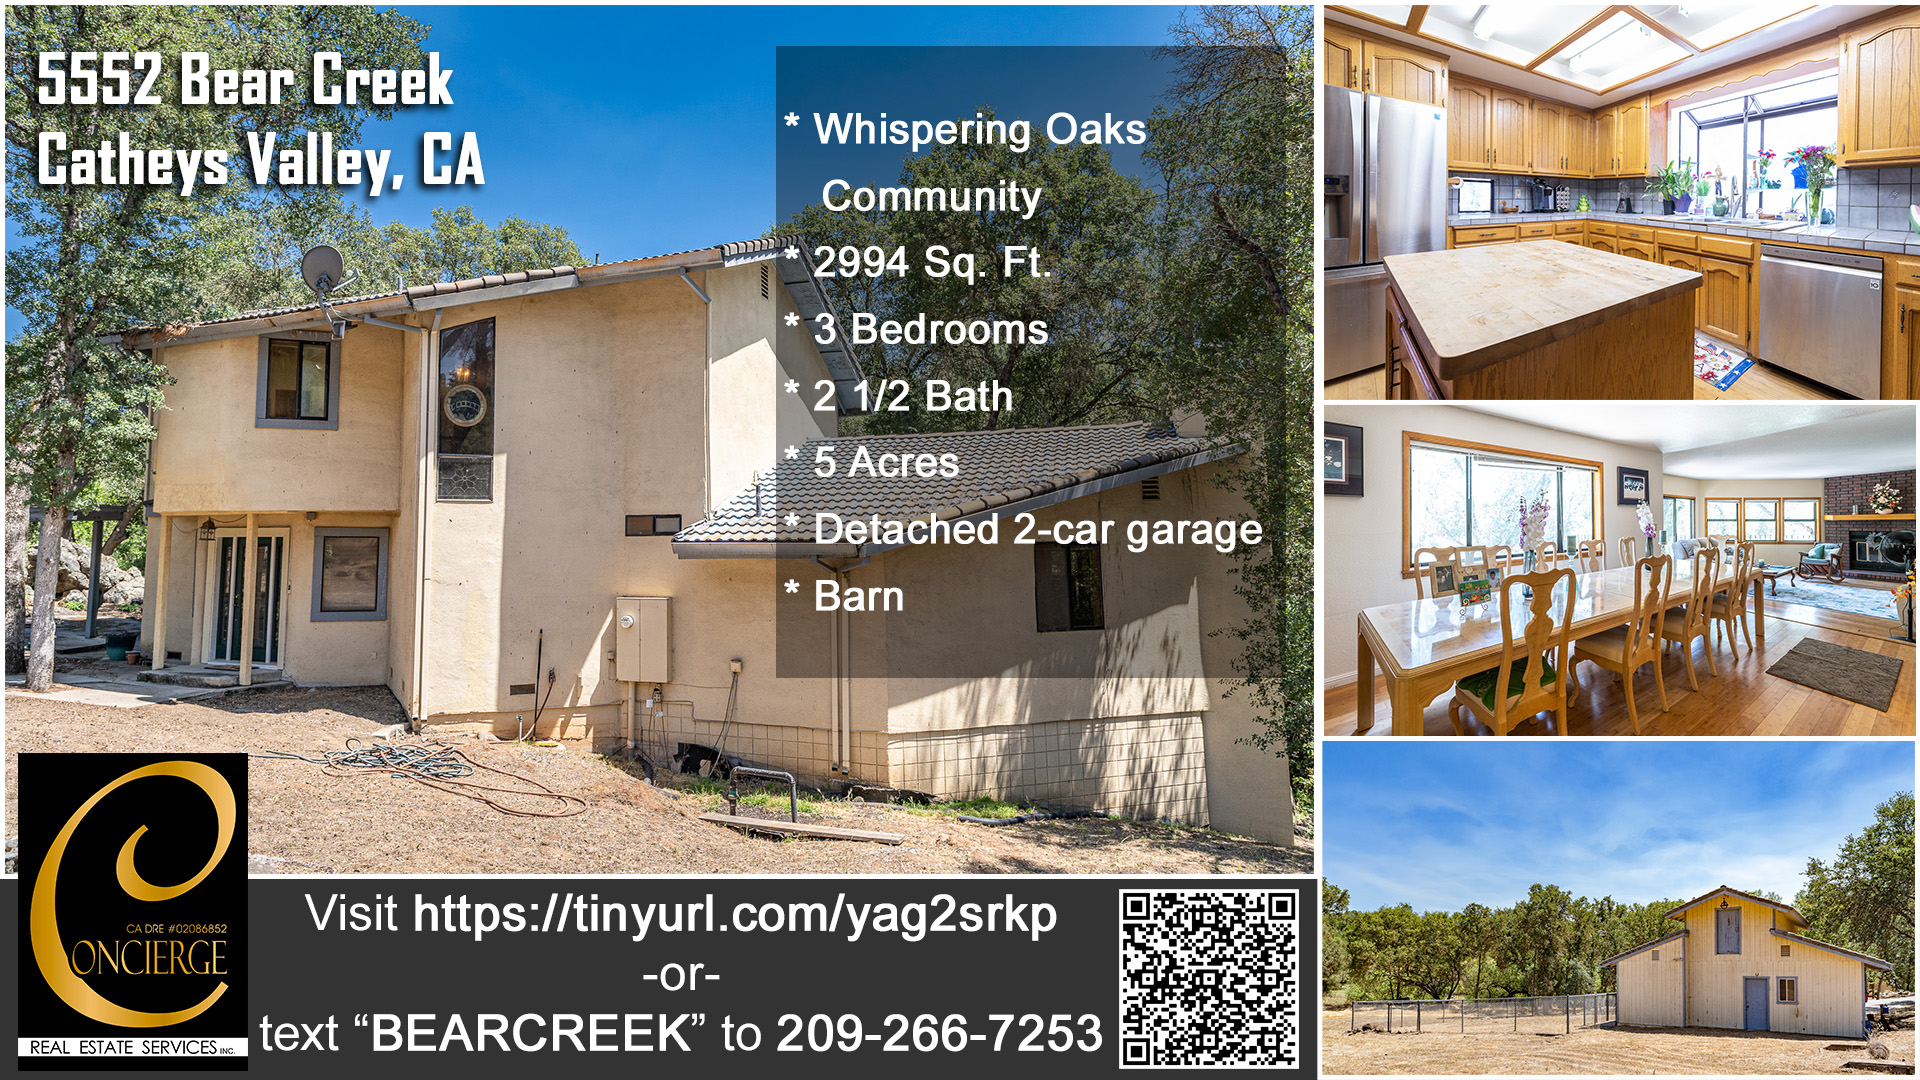 New listing in Whispering Oaks gated community in Mariposa